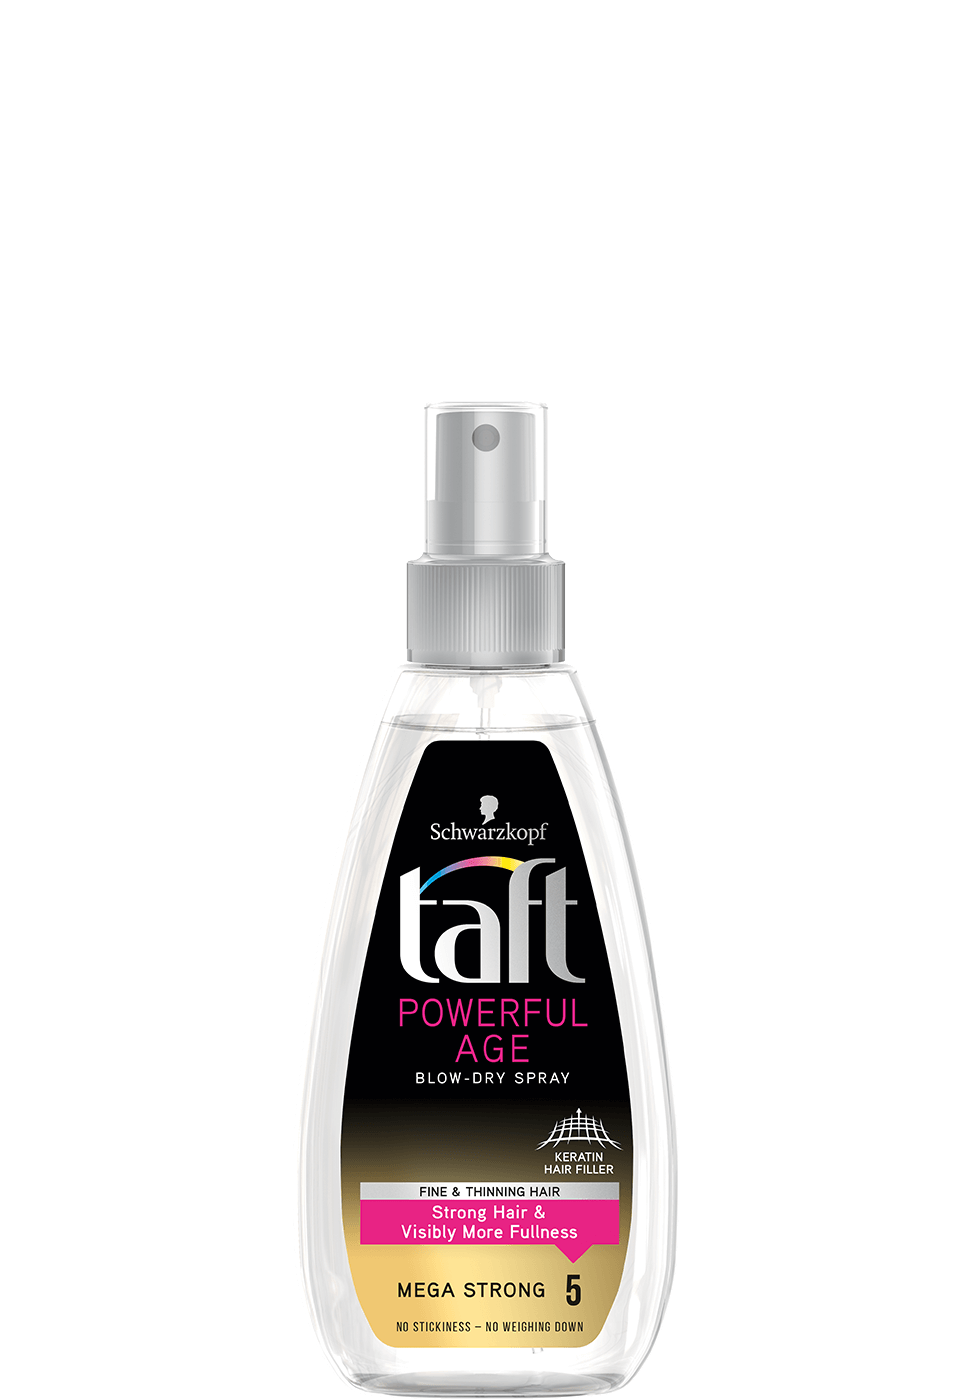 taft_com_powerful_age_hairdryer_spray_970x1400